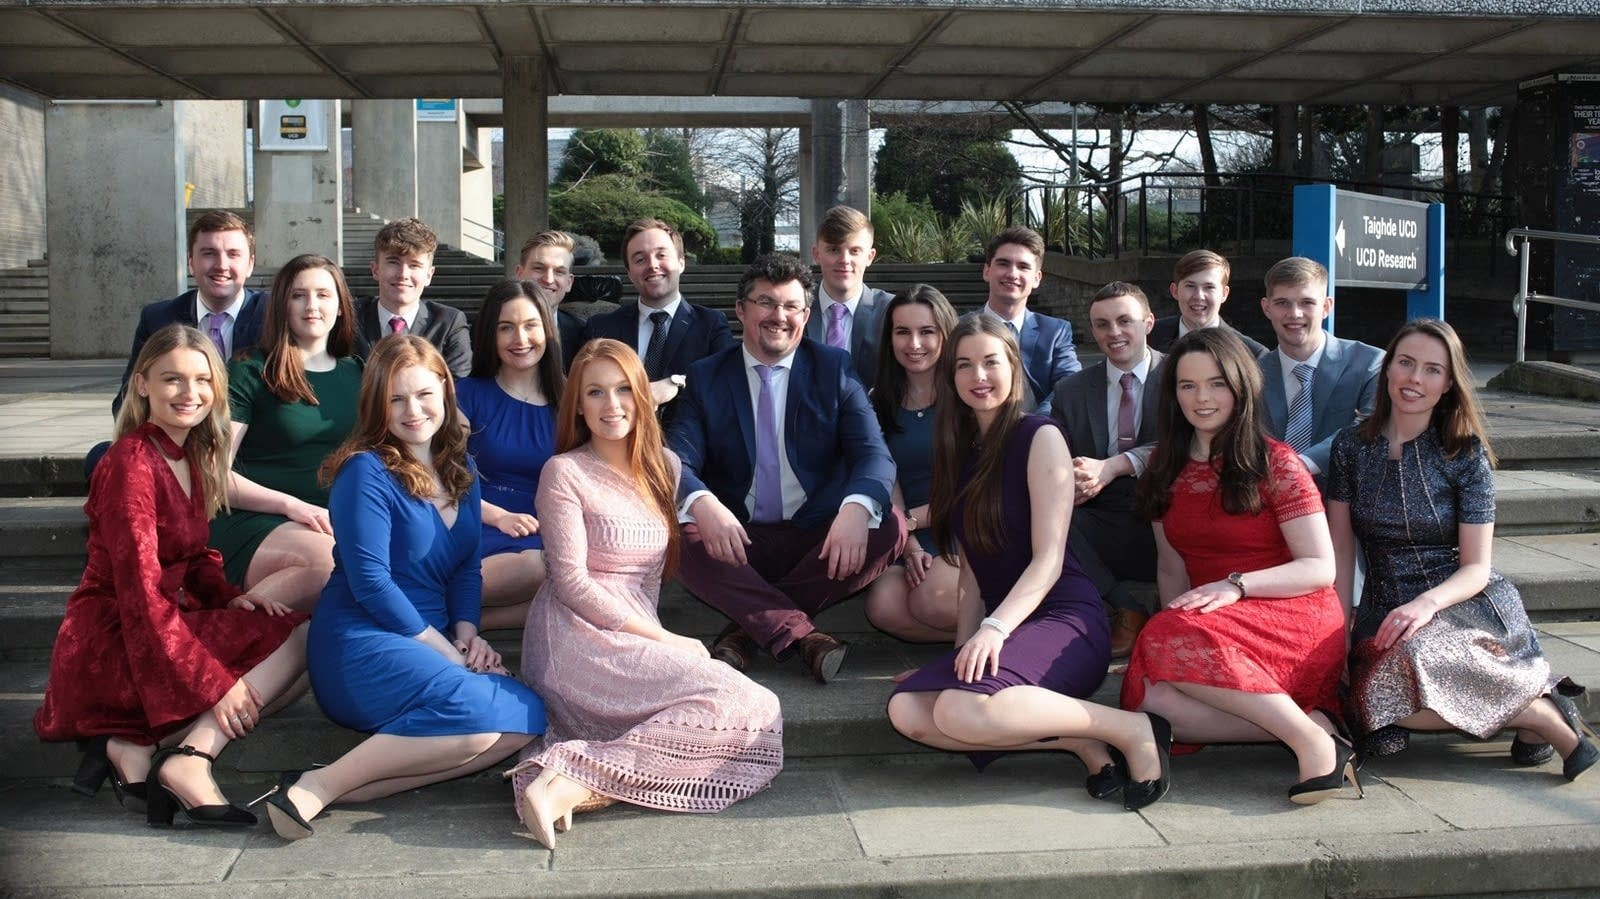 The Choral Scholars of University College Dublin